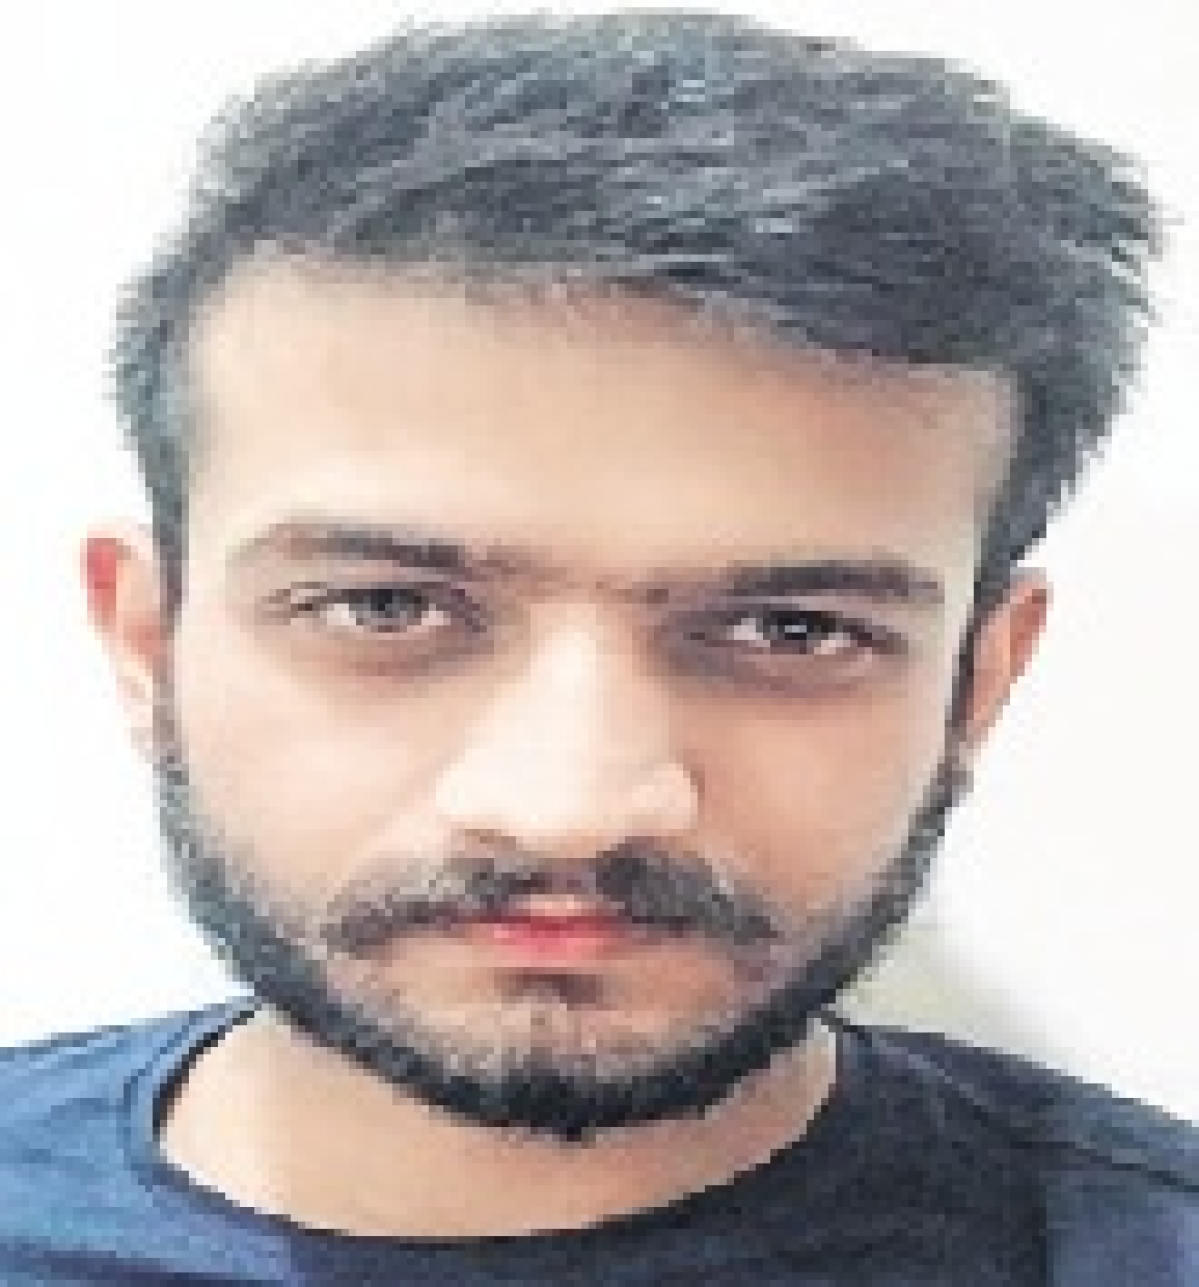 Indore: Indoreans come forward to support Aahar tem-plate